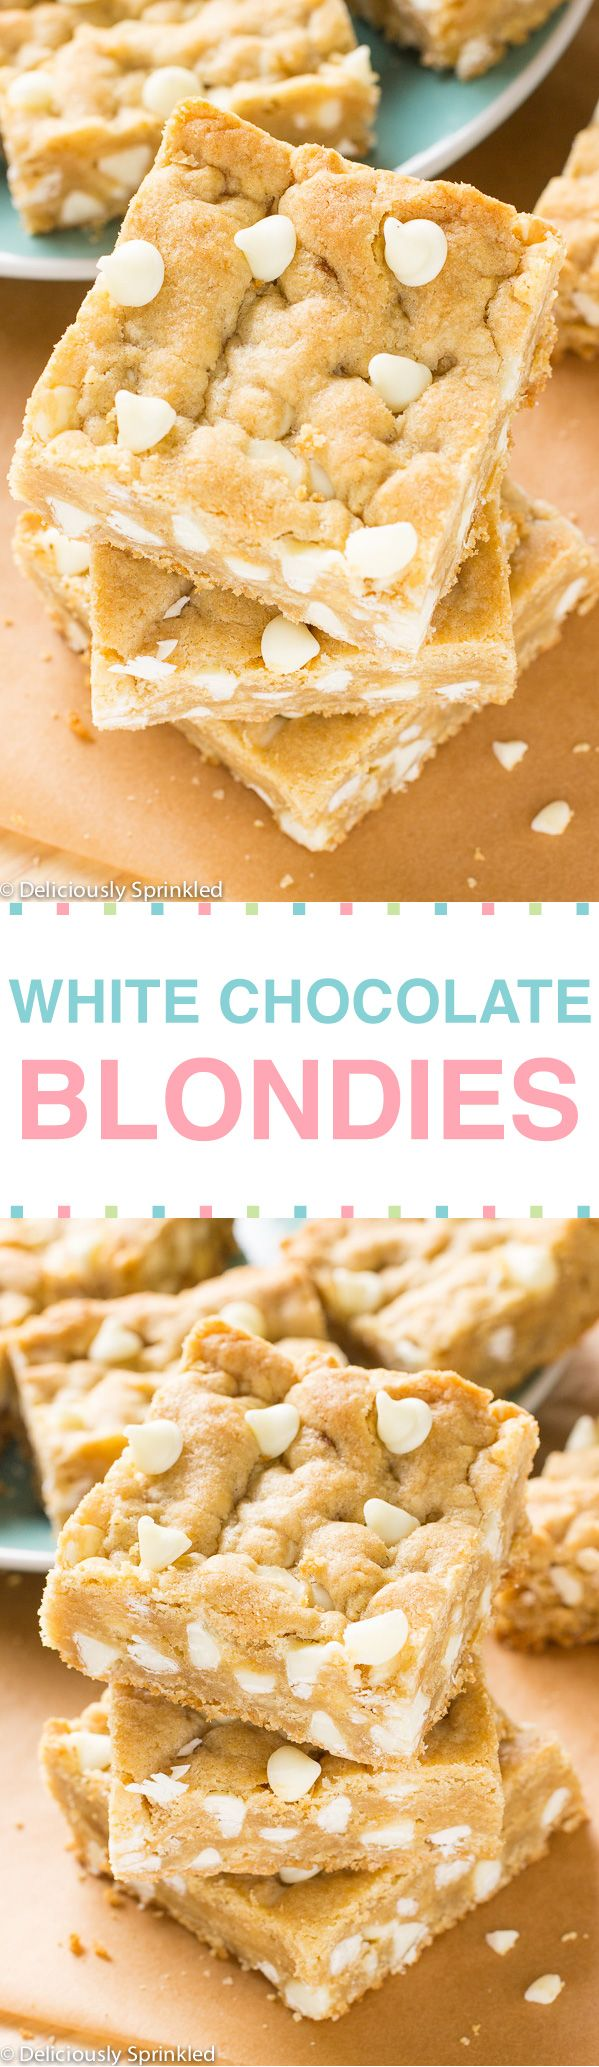 White Chocolate Blondies -- These delicious White Chocolate Blondies are soft, chewy and loaded with white chocolate chips